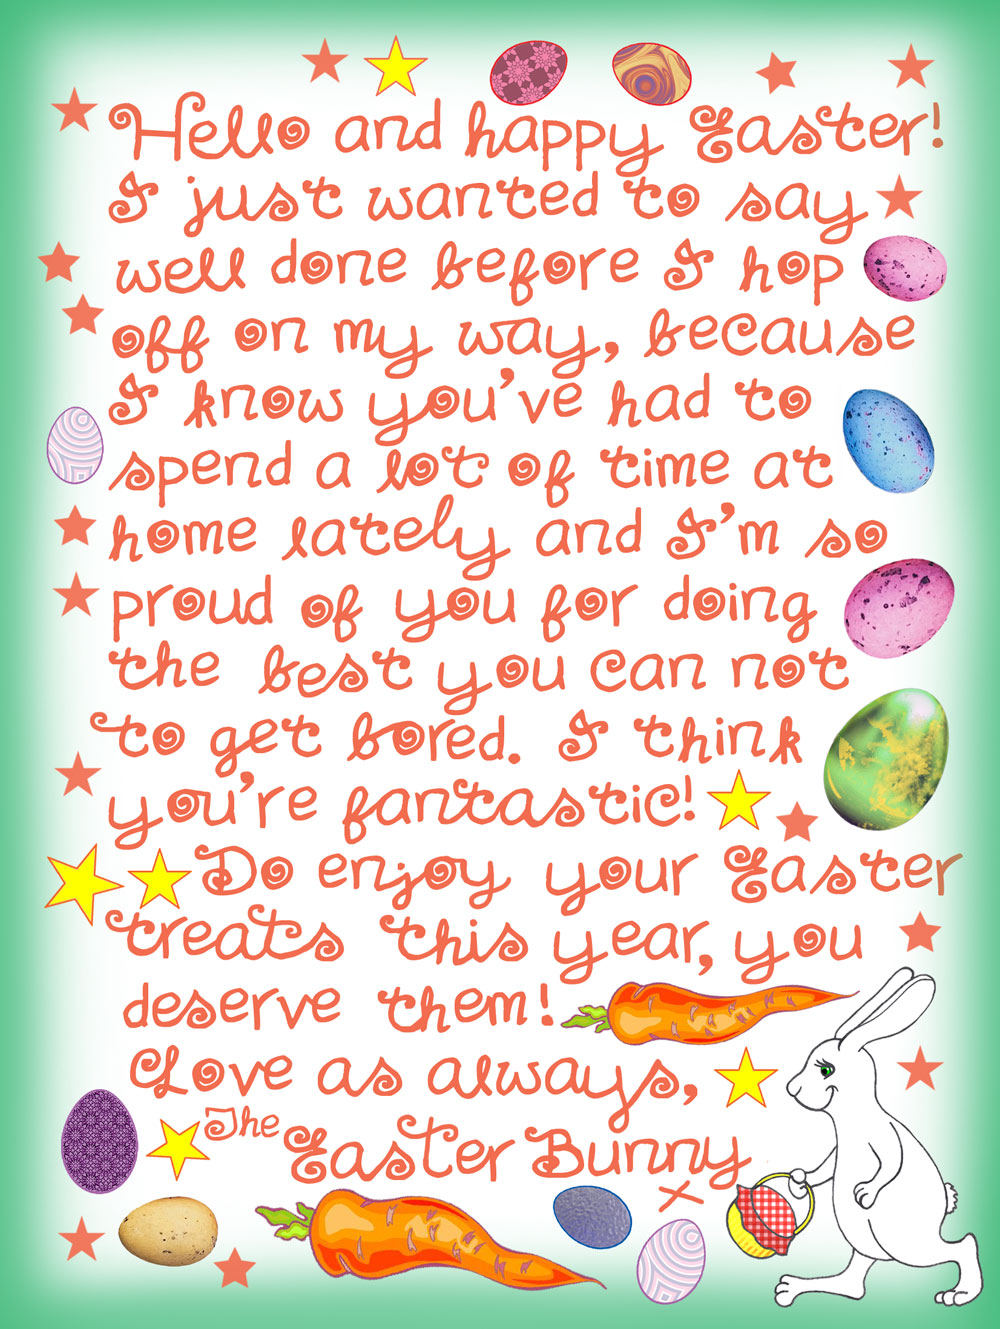 This is a free, handwritten note from the Easter Bunny saying well done to a child for staying inside. It's useful in light of the coronavirus pandemic.